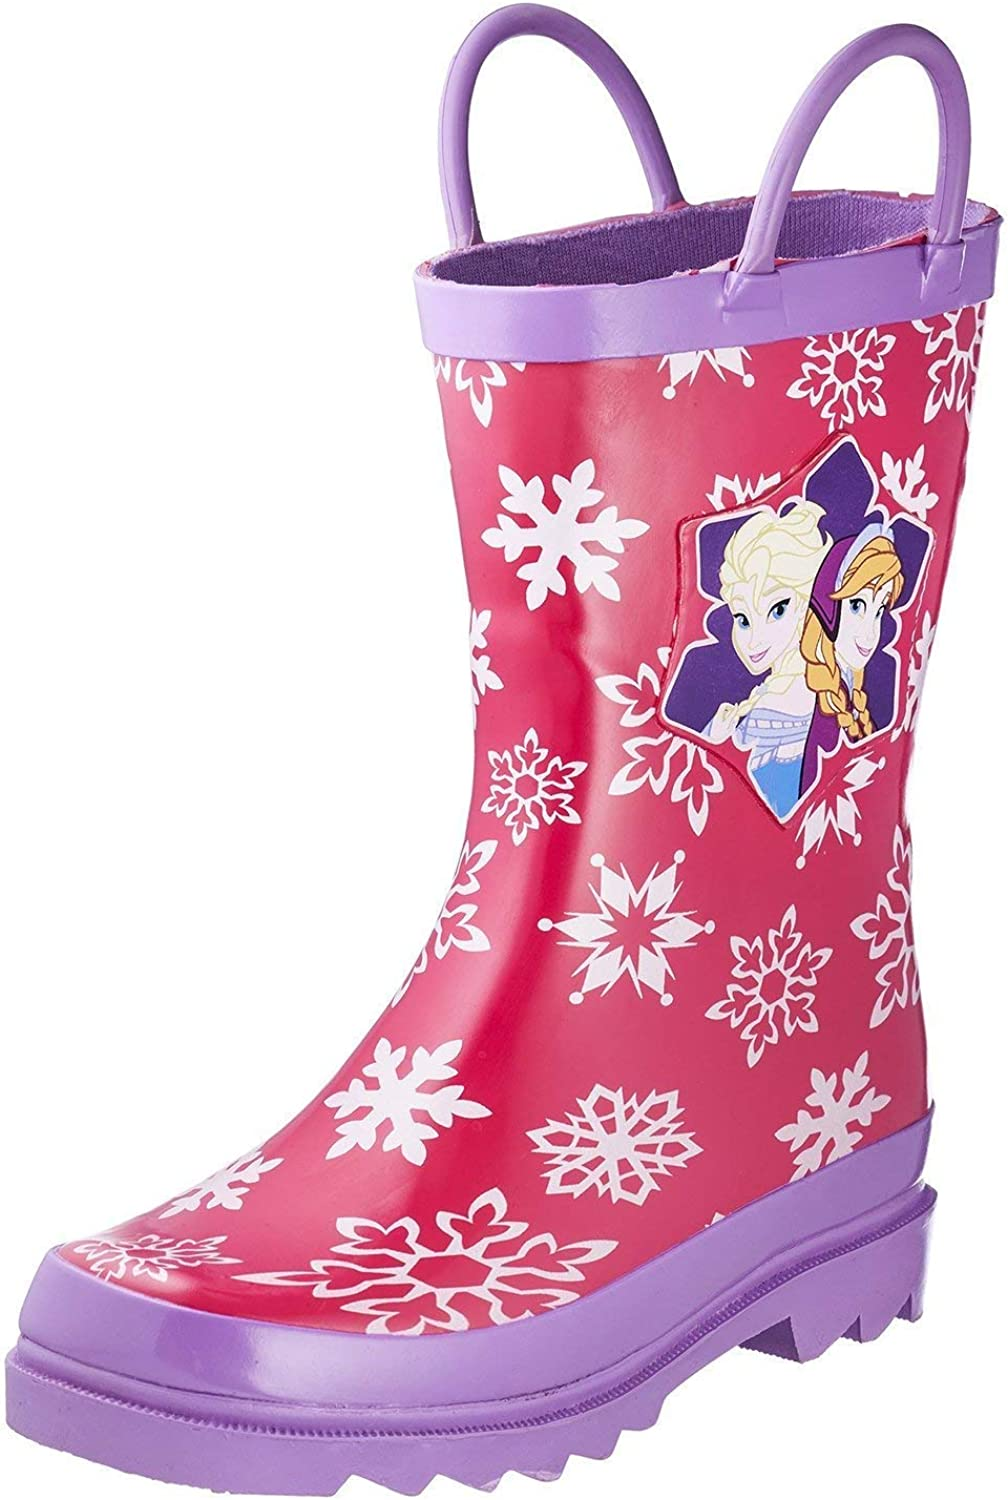 Disney/'s Frozen Kids Elsa and Anna Rain Boot Pink and Blue Size 9//10